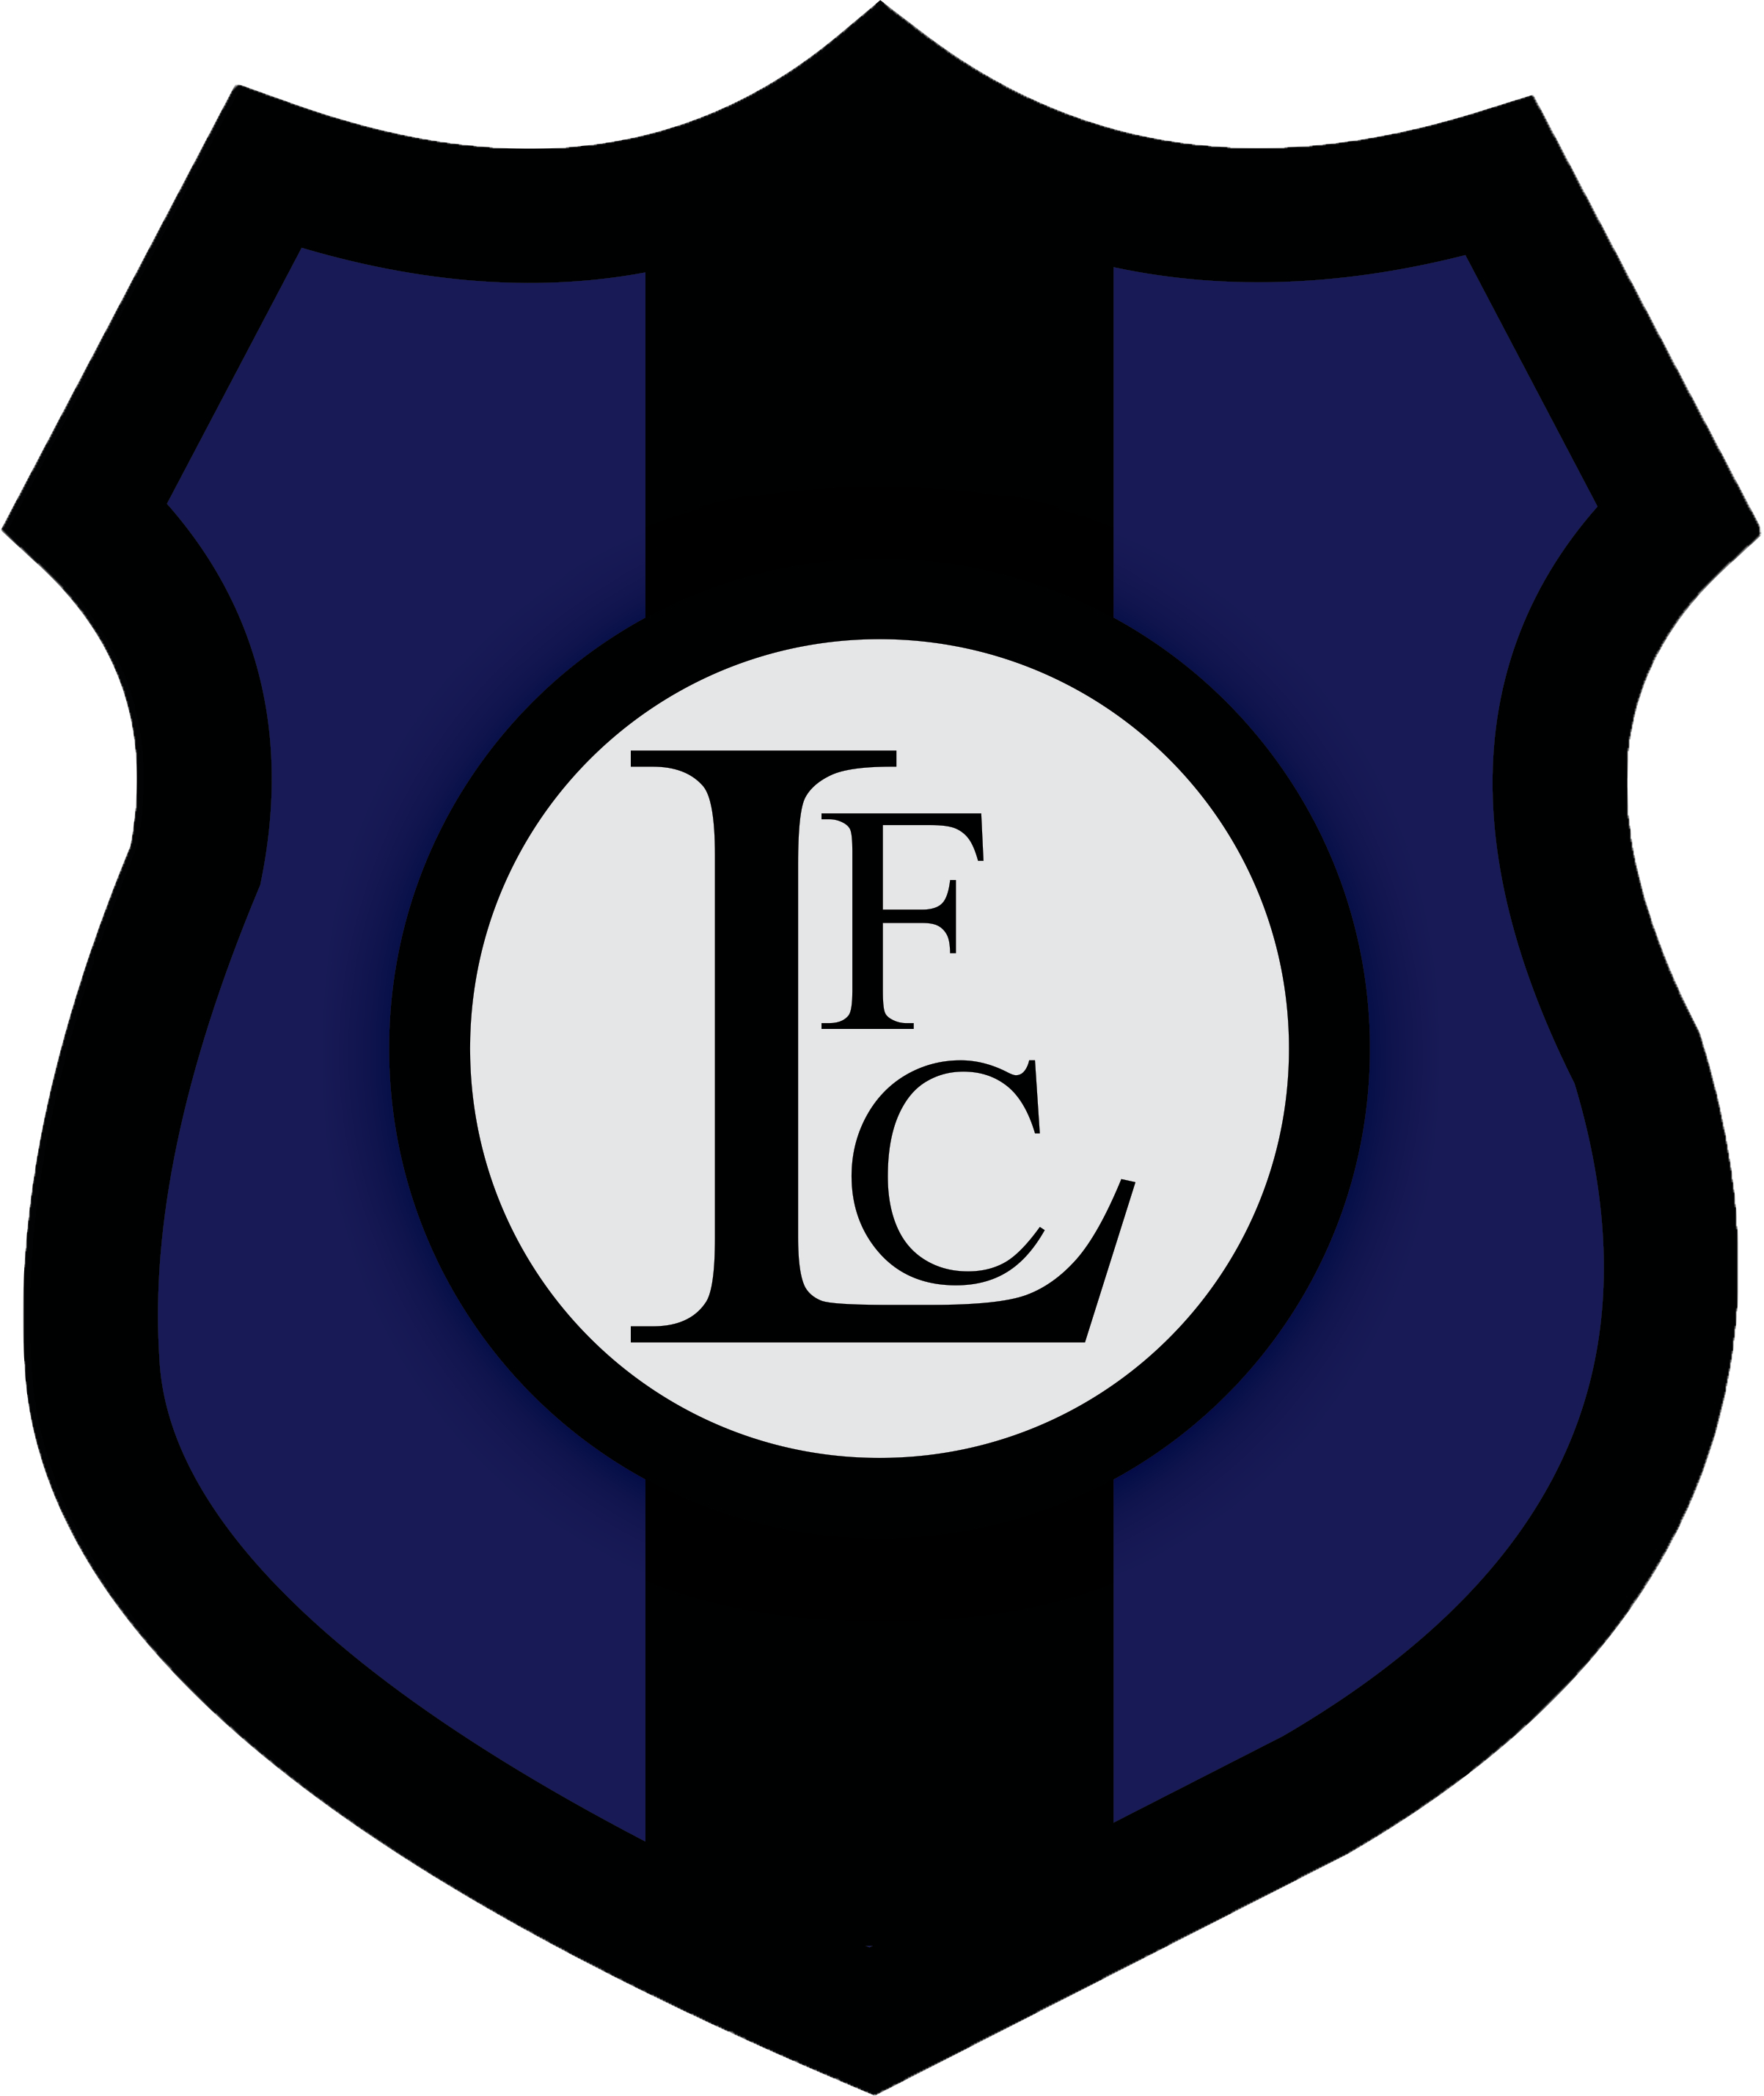 letrasfc.png